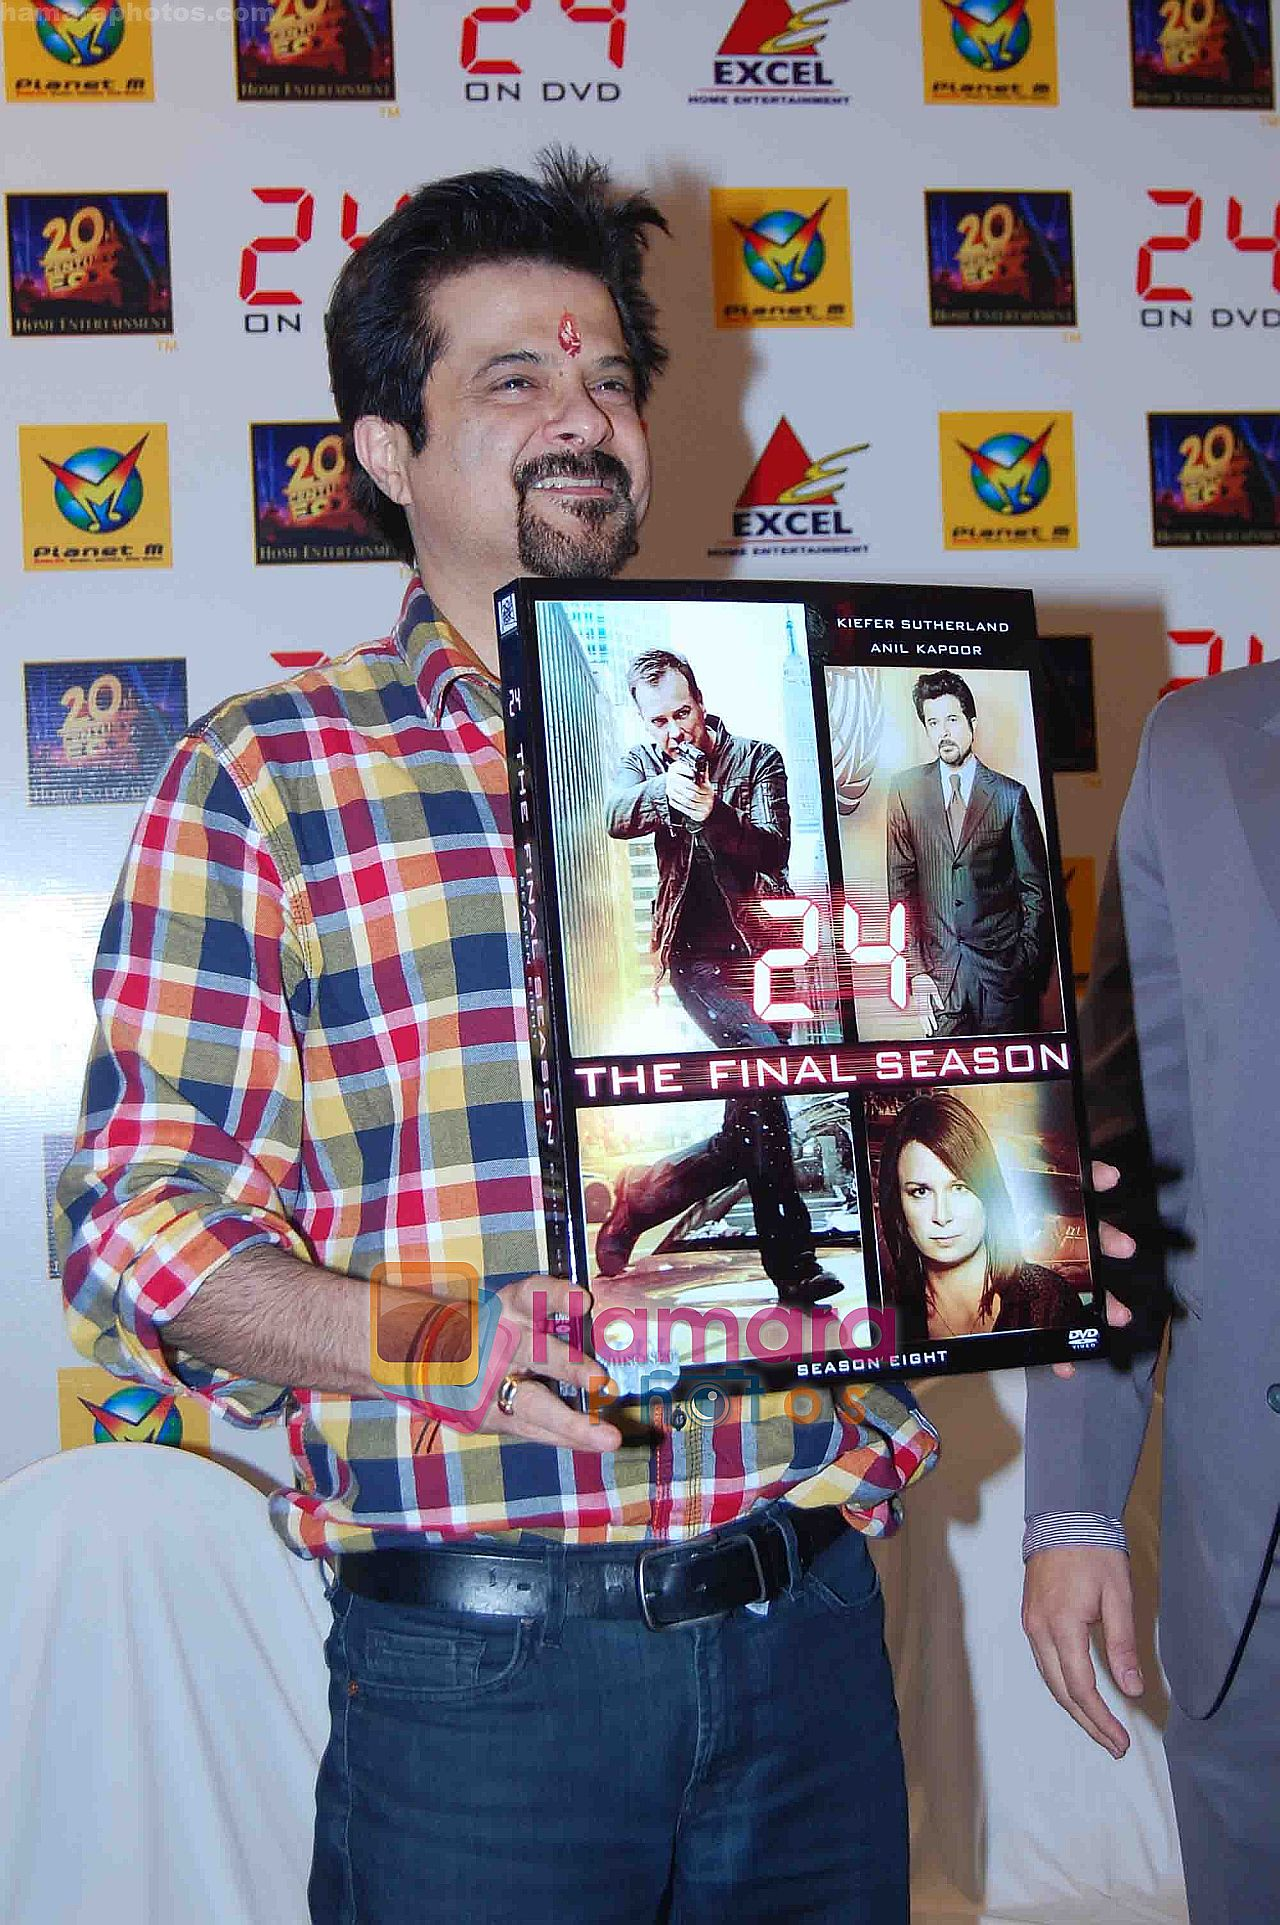 Anil Kapoor unveils 24 Season 8 on DVD at PLANET M on 27th Dec 2010